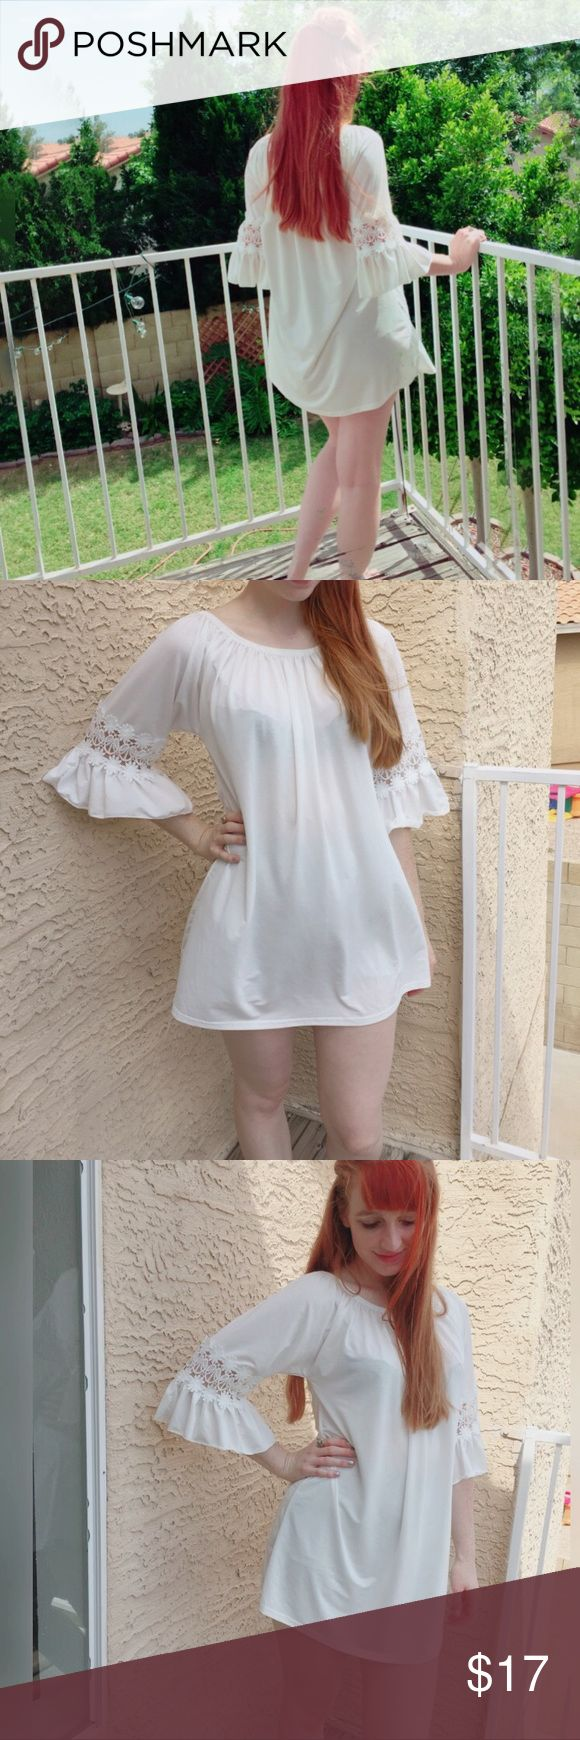 """Ivory & lace trumpet sleeve boho dress ✌️ So flowy and boho chic- like a dream✨💖 featuring soft ivory fabric, lace crochet sleeves, and trumpet sleeves with a dolphin hem- like skirt. I'm 5'7 and 32c, 28"""" & 39"""" for your reference. Urban Outfitters Dresses Mini"""